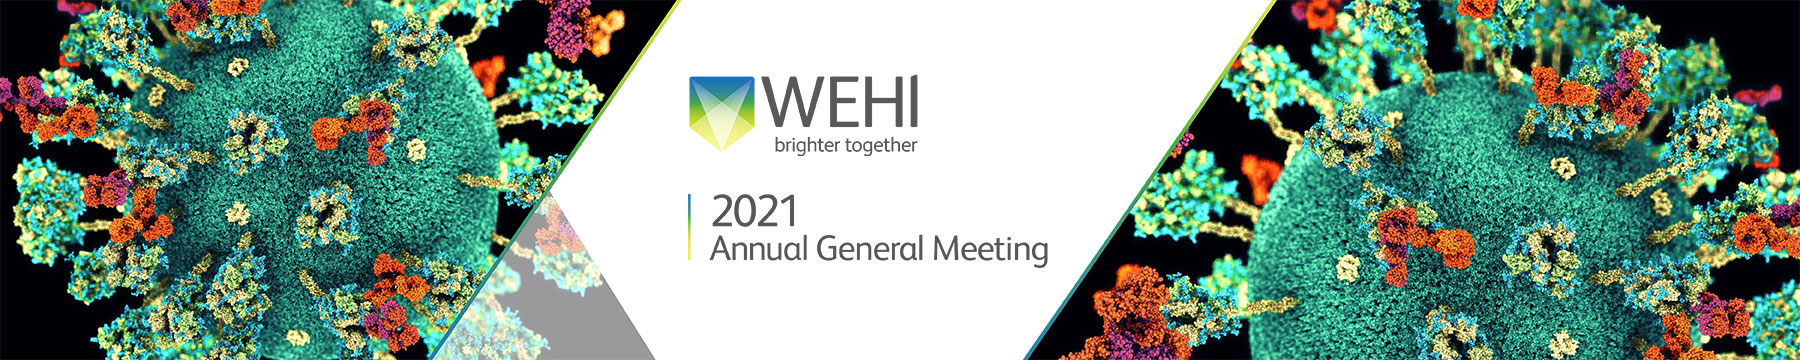 Annual General Meeting 2021 promotional banner